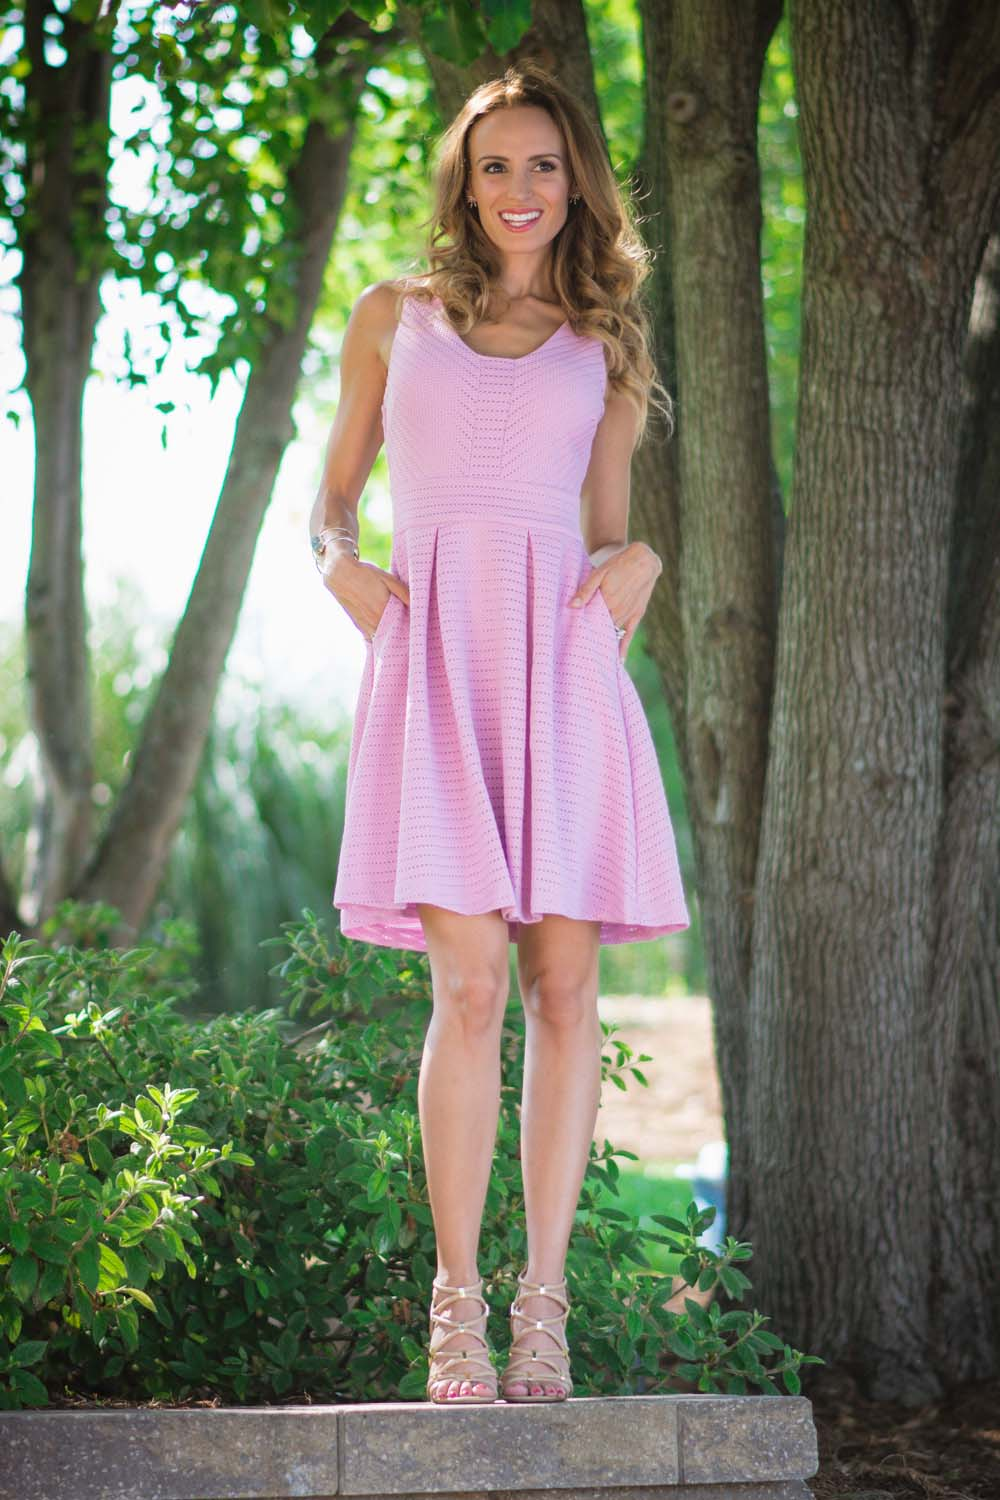 The Perfect Fit & Flare Dress for Summer